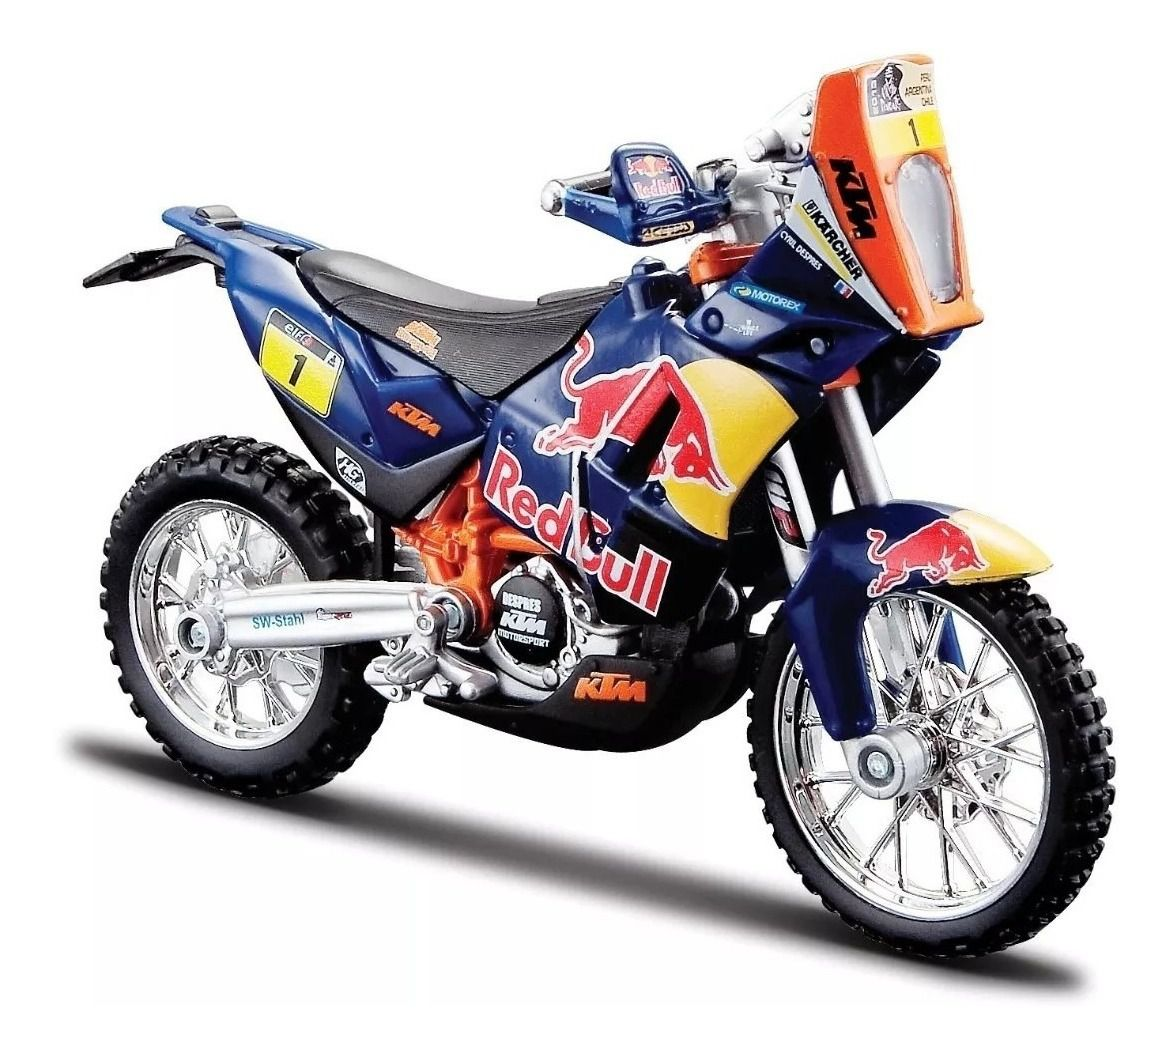 Miniatura Moto KTM 450 Rally (Dakar Rally) Red Bull Factory Racing - 1:18 - Burago